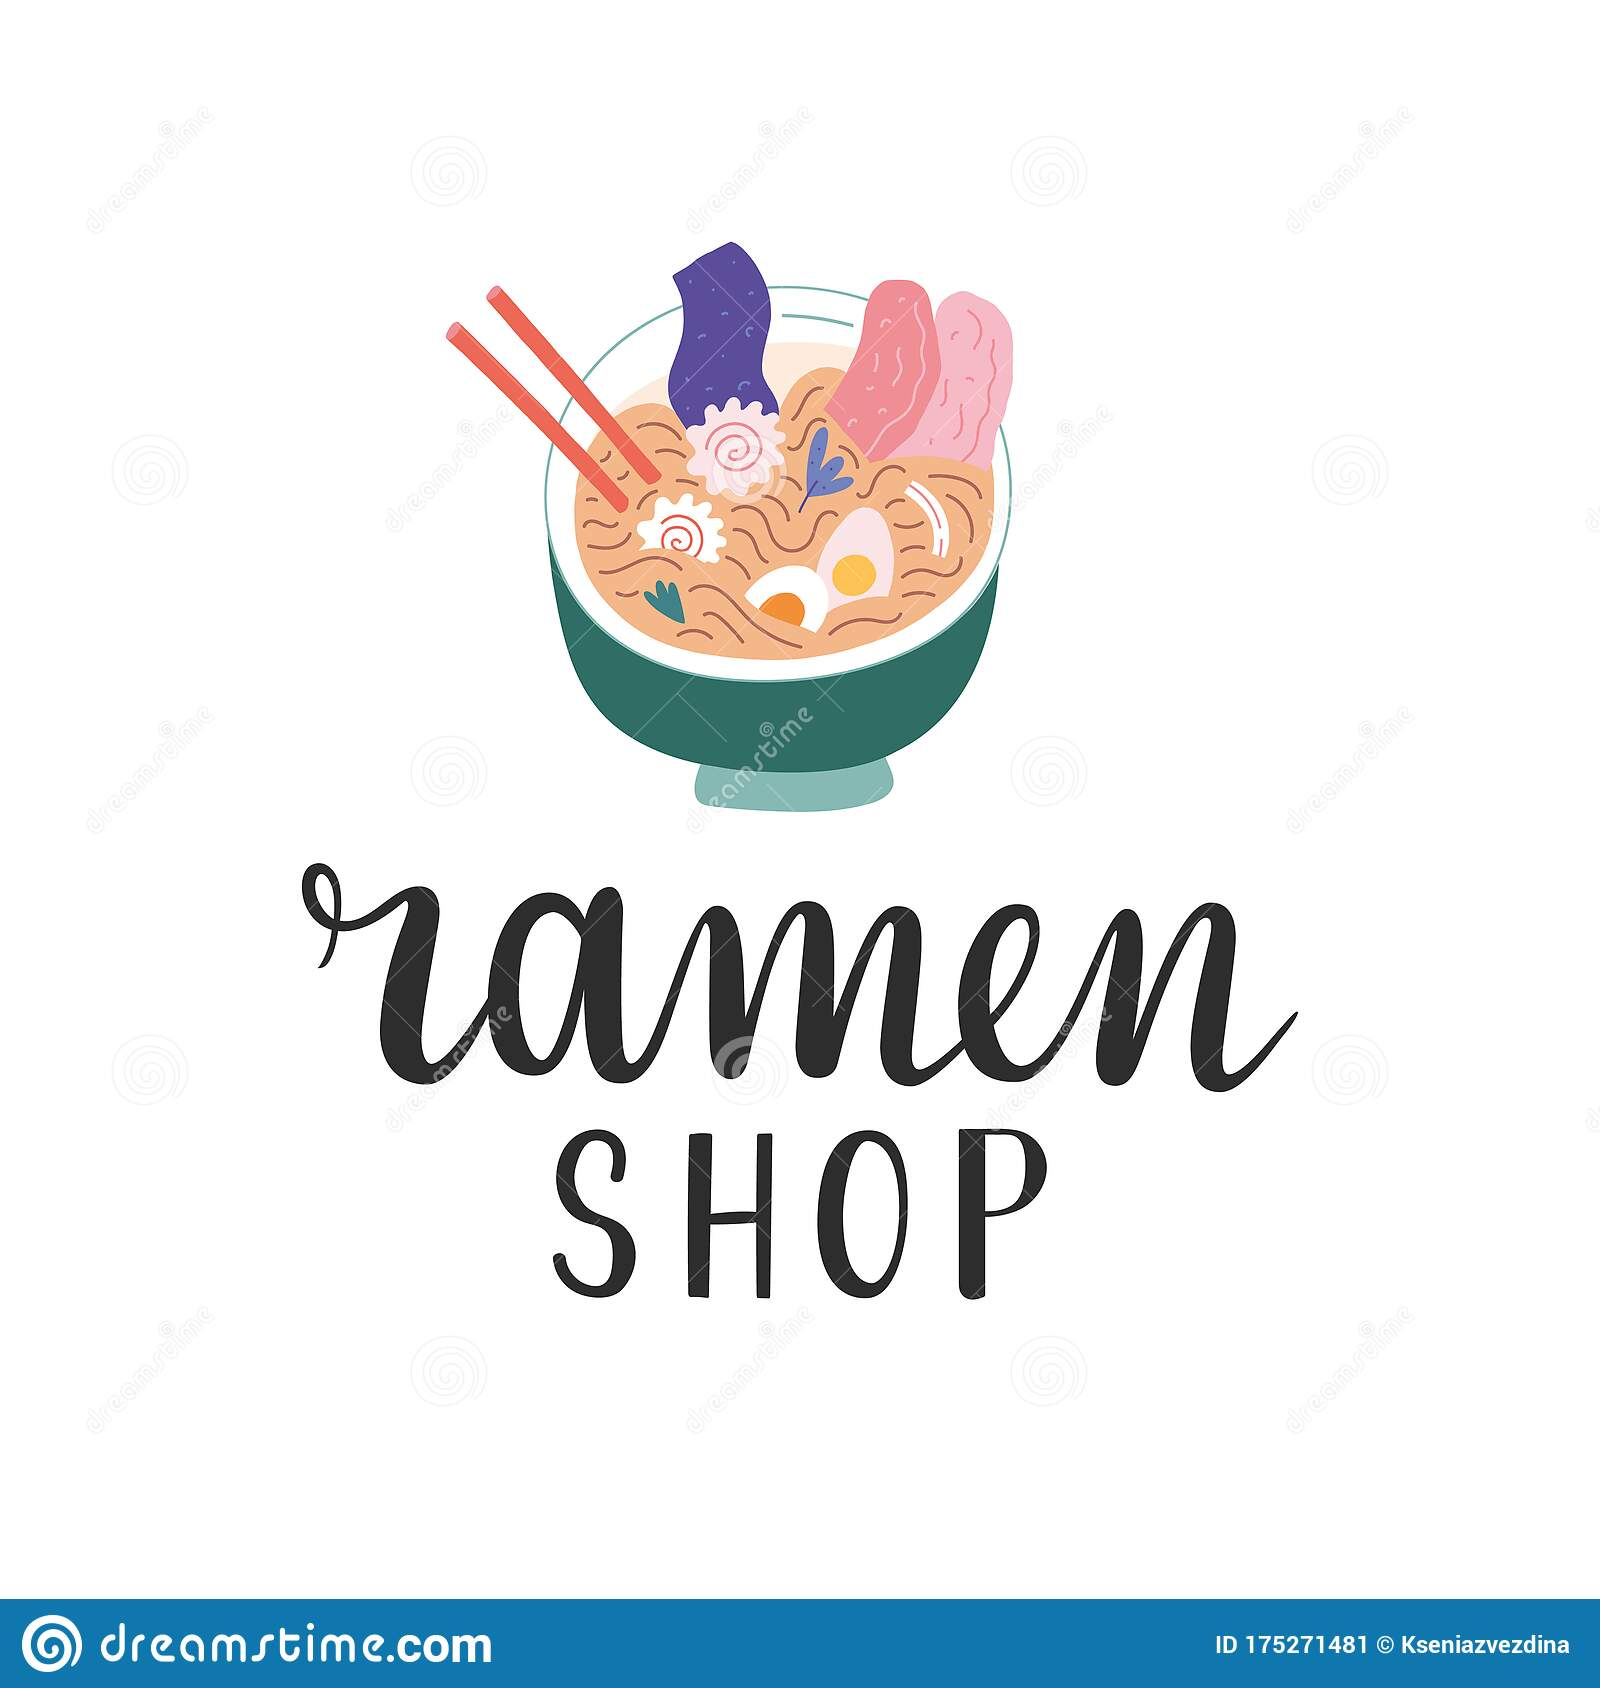 Ramen Shop Logo Handwritten Lettering Logotype For Asian Food Cafe Or Restaurant Illustration Of Ramen Bowl With Stock Vector Illustration Of Name Typography 175271481